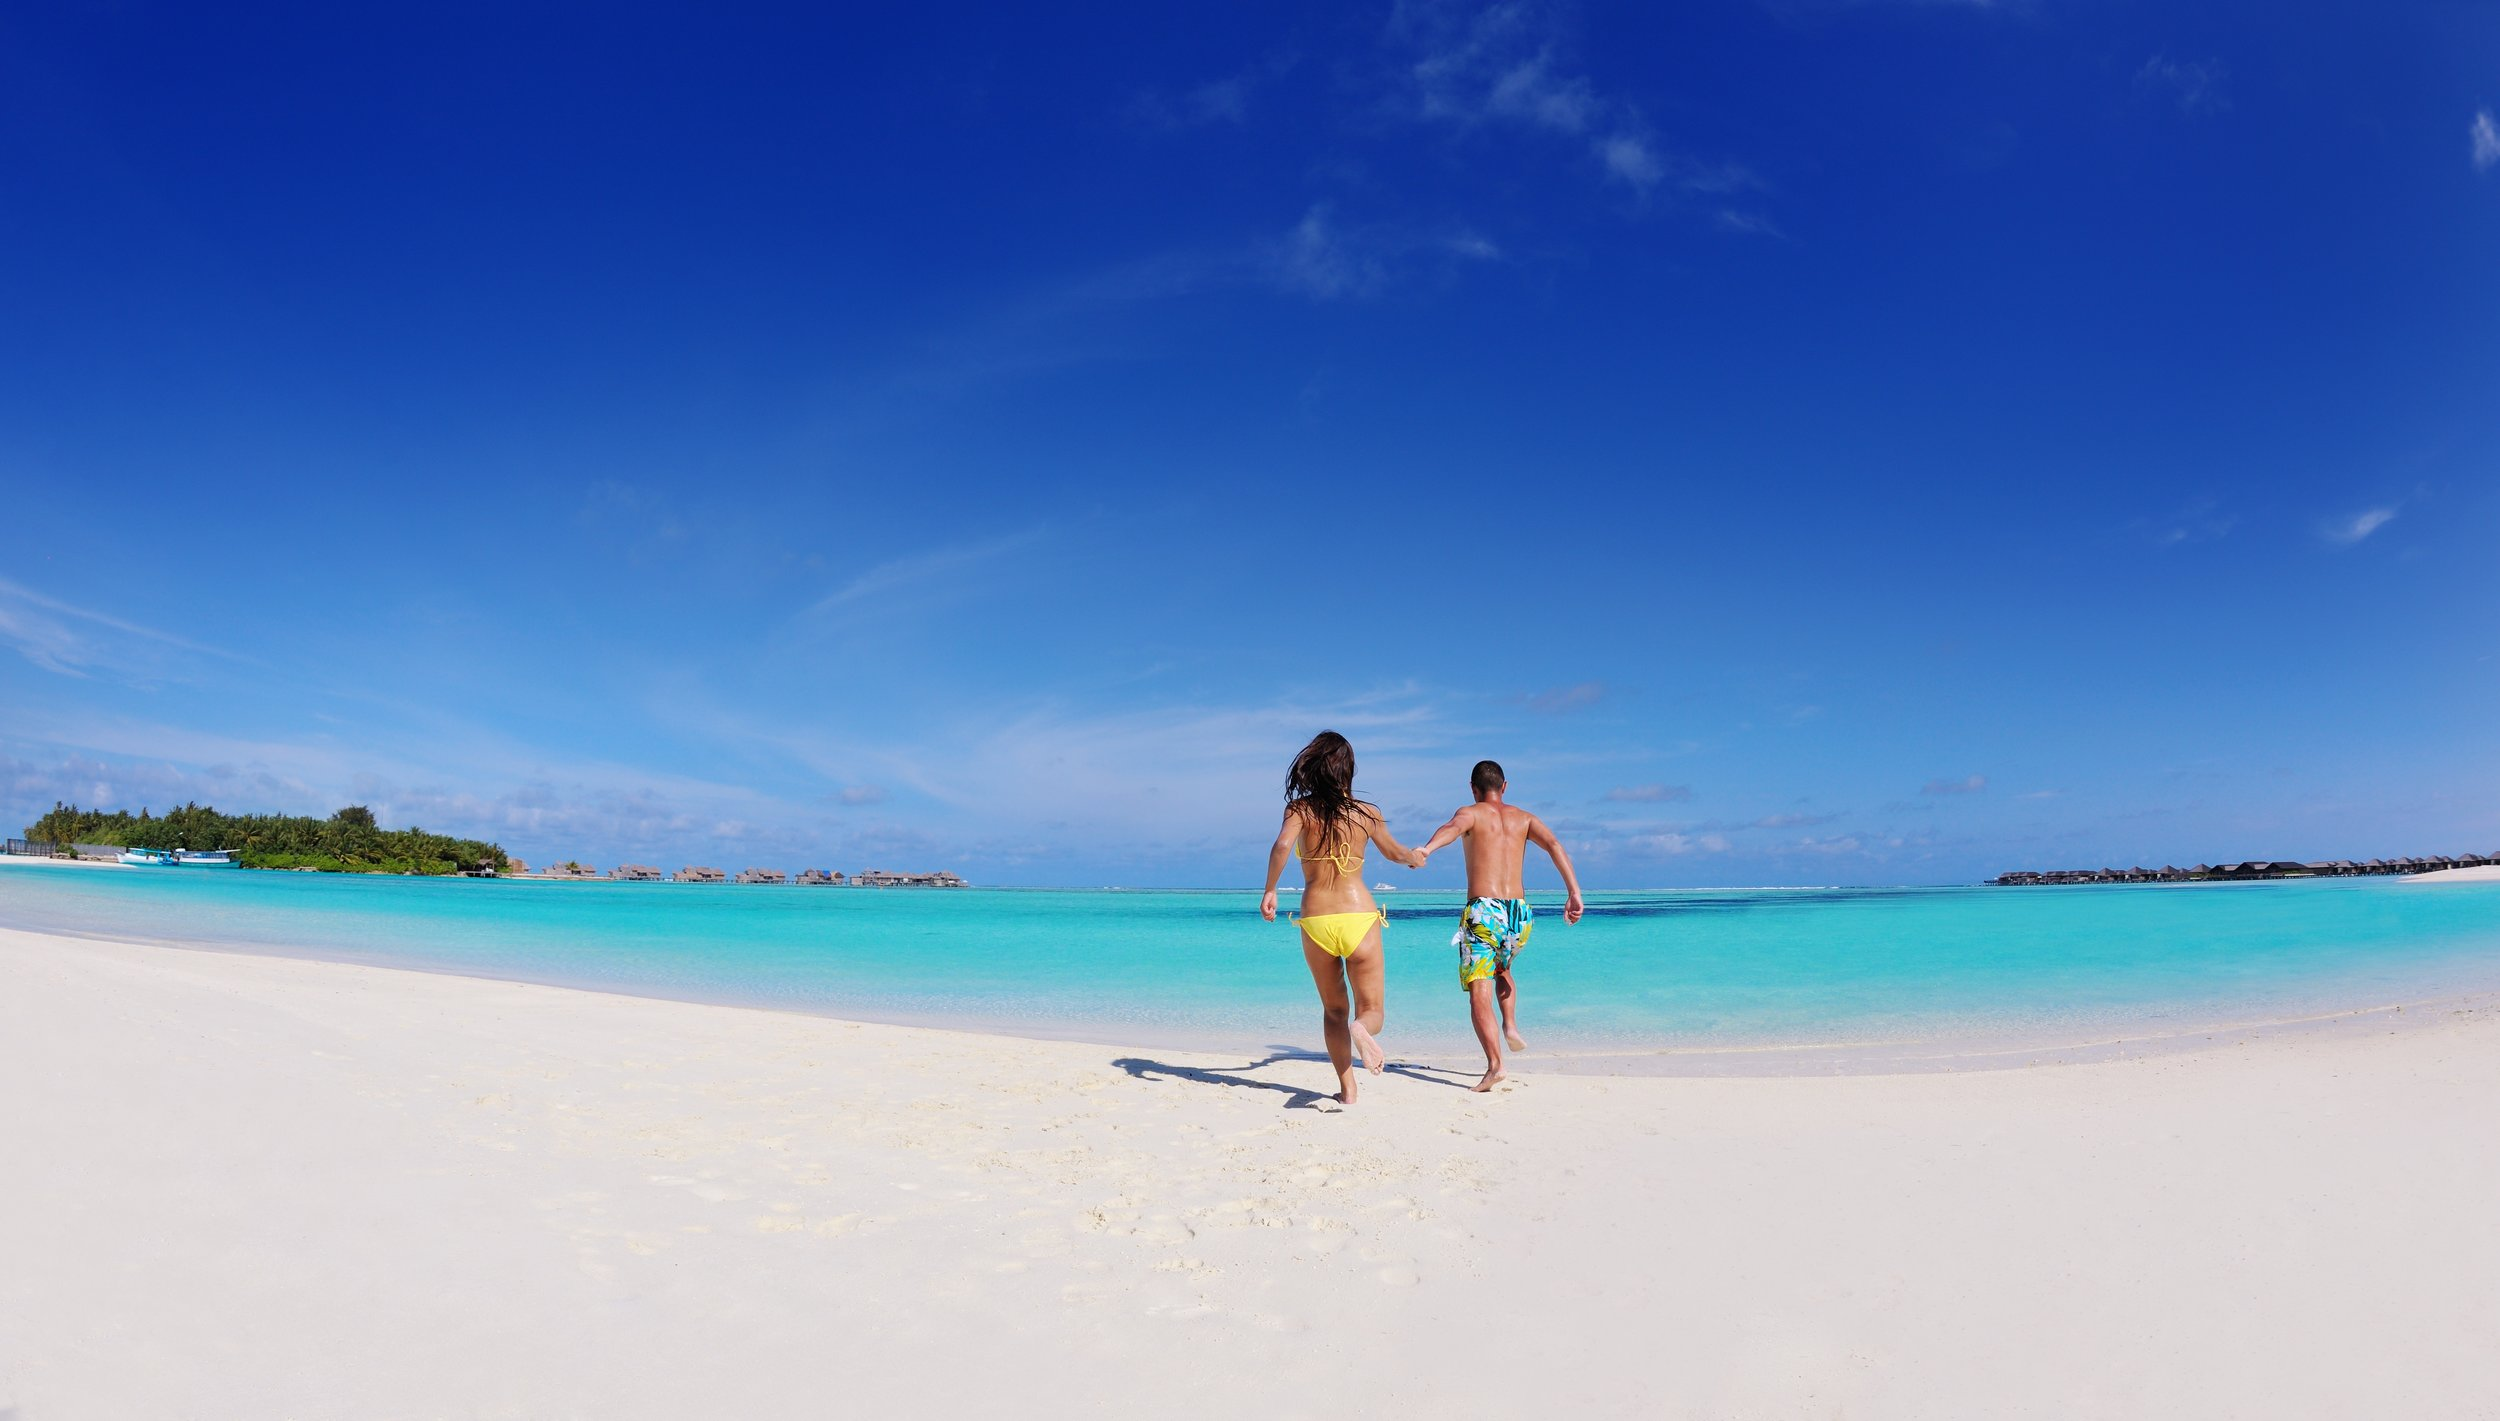 invite-to-paradise-holiday-honeymoon-sri-lanka-maldives-couple-beach-run.jpg